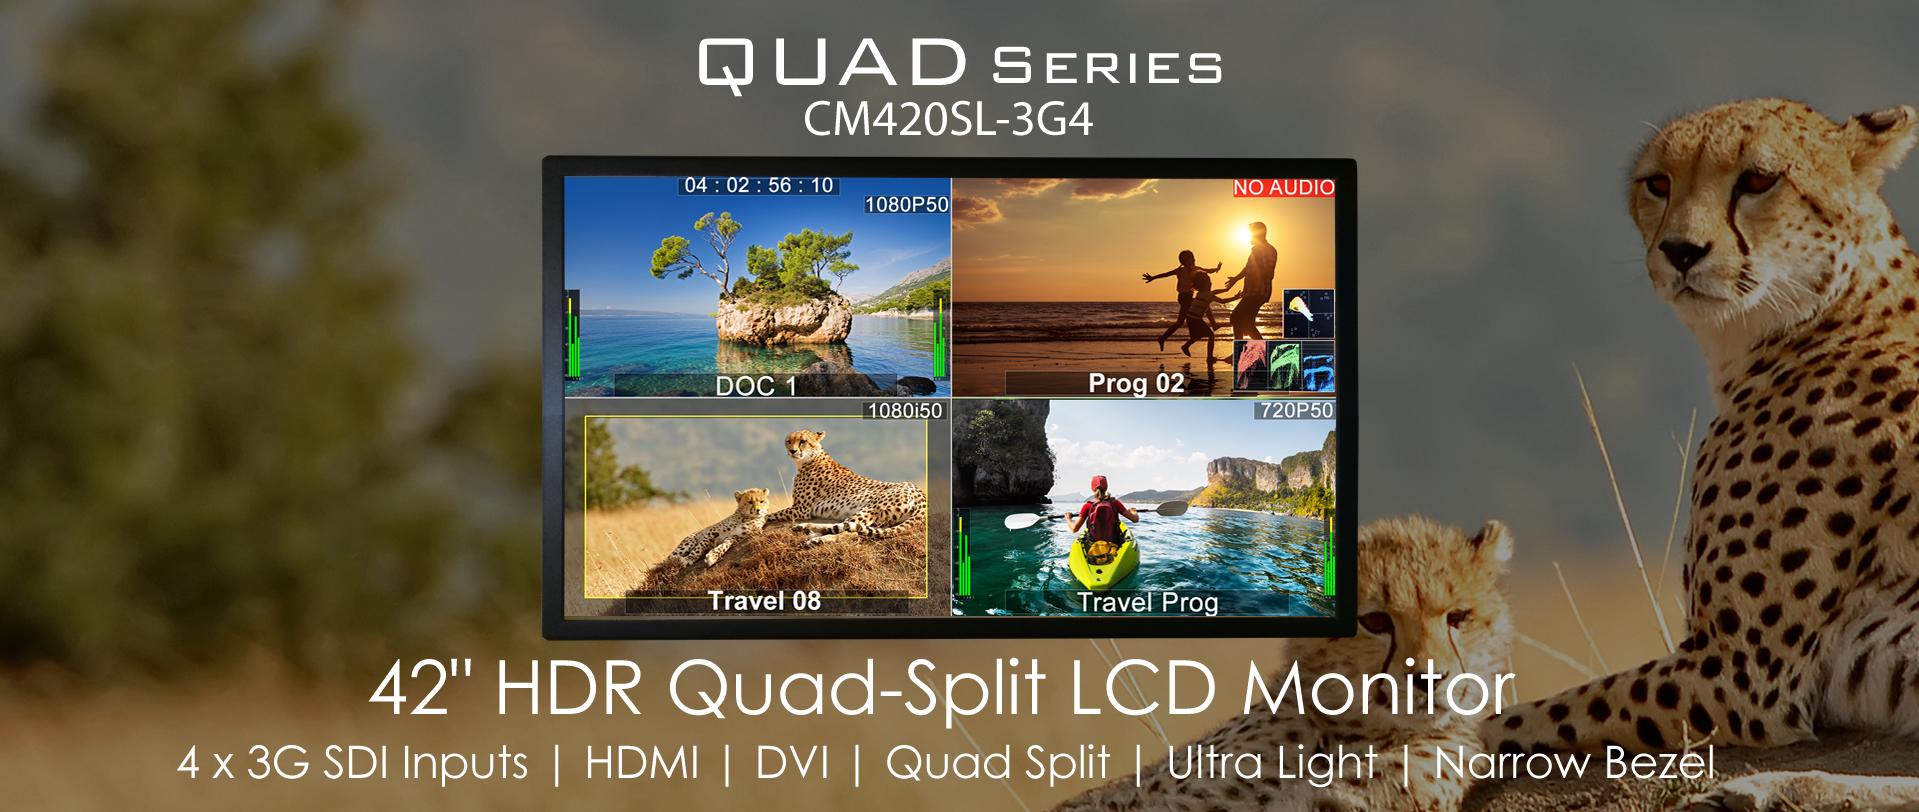 Professional Quad-Split LCD Monitors Full HD 42